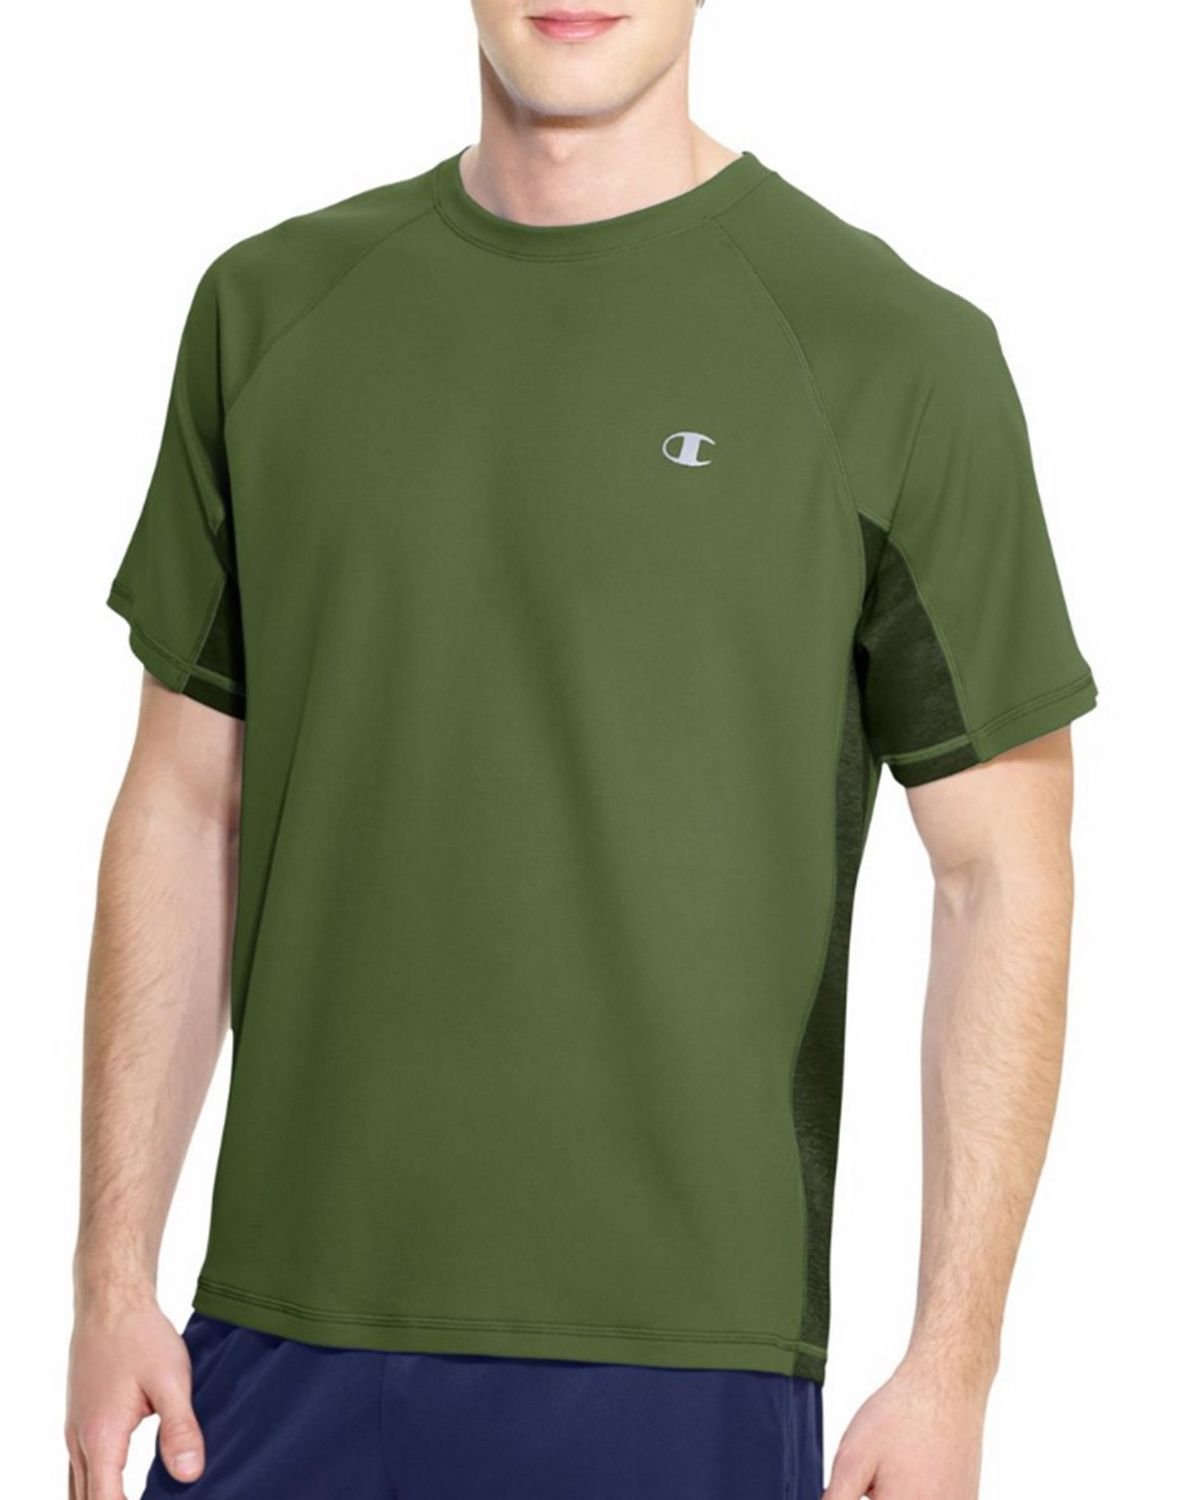 Champion T6608 Vapor PowerTrain Colorblock Tee - Service Green/Bottle Green - XL T6608